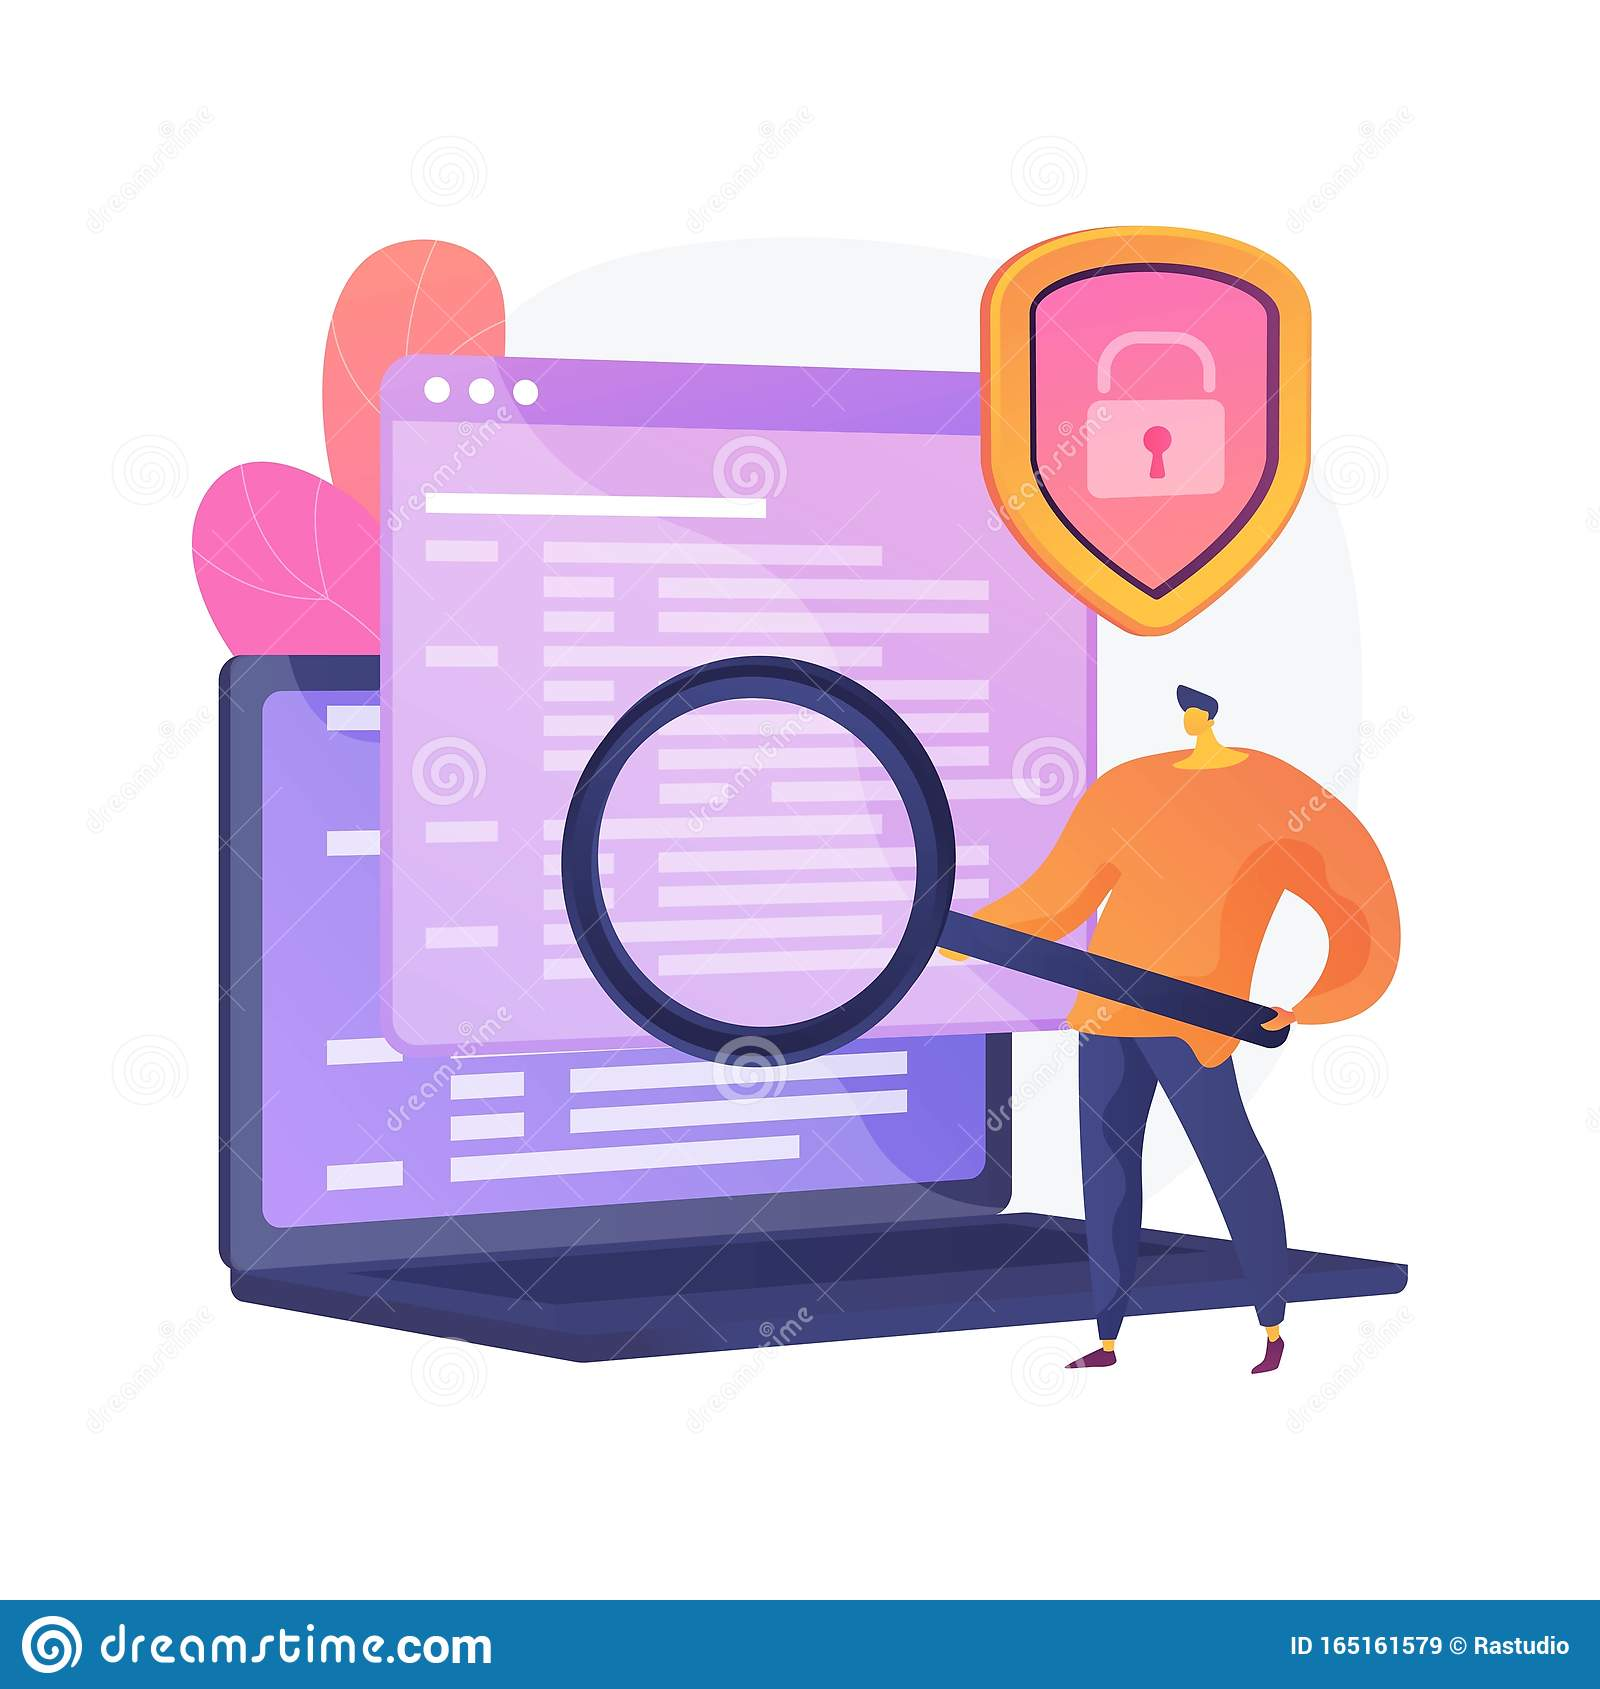 Computer Forensics Vector Concept Metaphor Stock Vector Illustration Of Icon Display 165161579